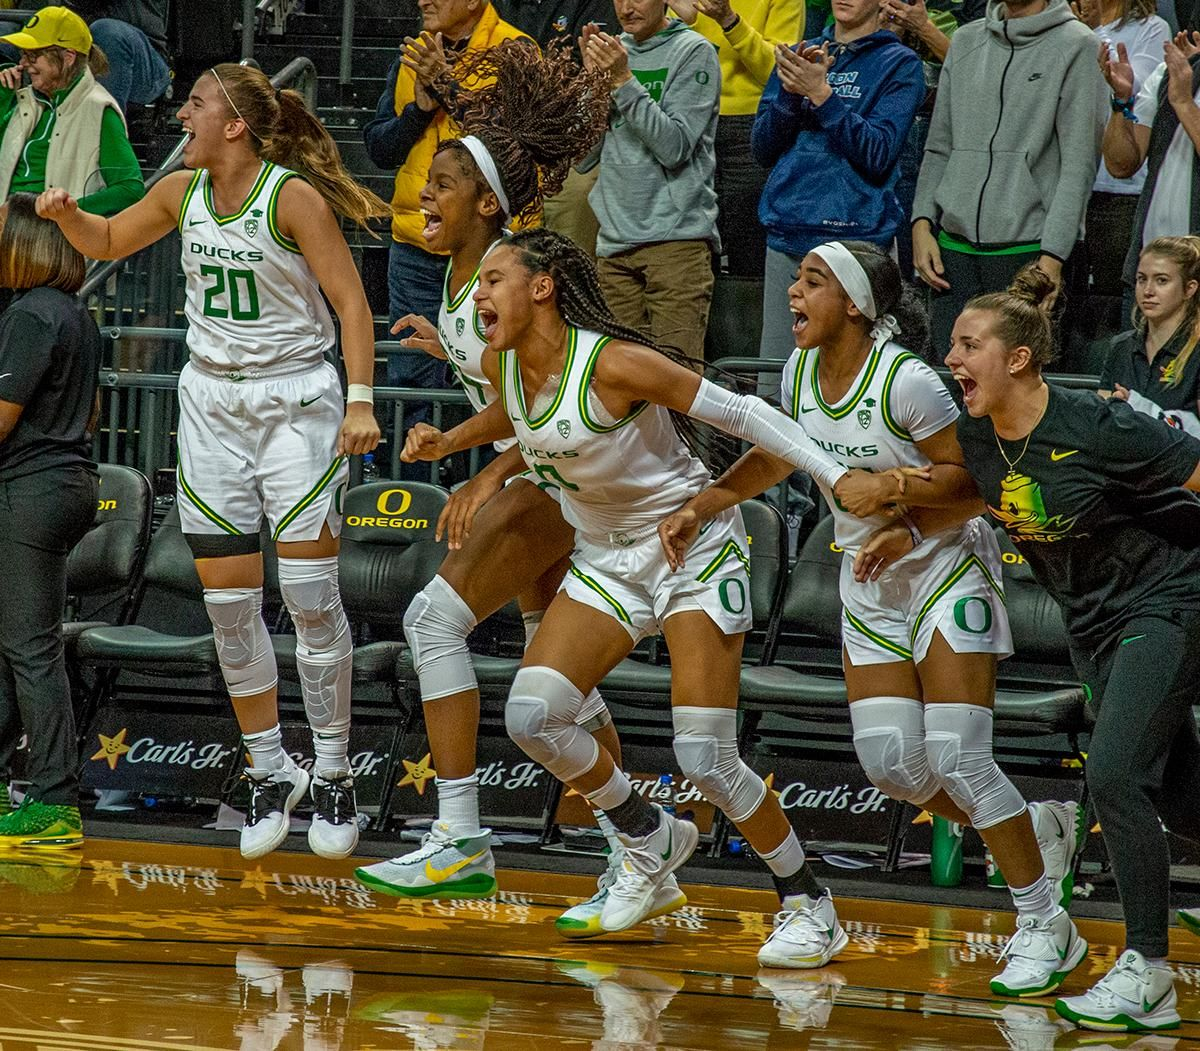 From left to right, Sabrina Ionescu, #20, Ruthy Hebard, #24, Satou Sabally, #0, Minyon Moore, #23, and Morgan Yaeger, #2, celebrating after victory over Stanford. The #6 University of Oregon Ducks women's basketball team defeated #3 Stanford Cardinal 87-55 in front of a sold out crowd of 12, 218 fans in Matthew Knight Arena. Sabrina Ionescu broke the all-time Oregon scoring record of 2,253 and ended the game with 37 points, 11 rebounds, another double-double. Satou Sabally added 18 points and 11 rebounds, also a double-double. Ruthy Hebard put up 11 points with 5 rebounds, and Minyon Moore added 10 points 3 rebounds. The Ducks next face off against Cal on Sunday, January 19, at 2 pm in Matthew Knight Arena. Photo by Jeffrey Price